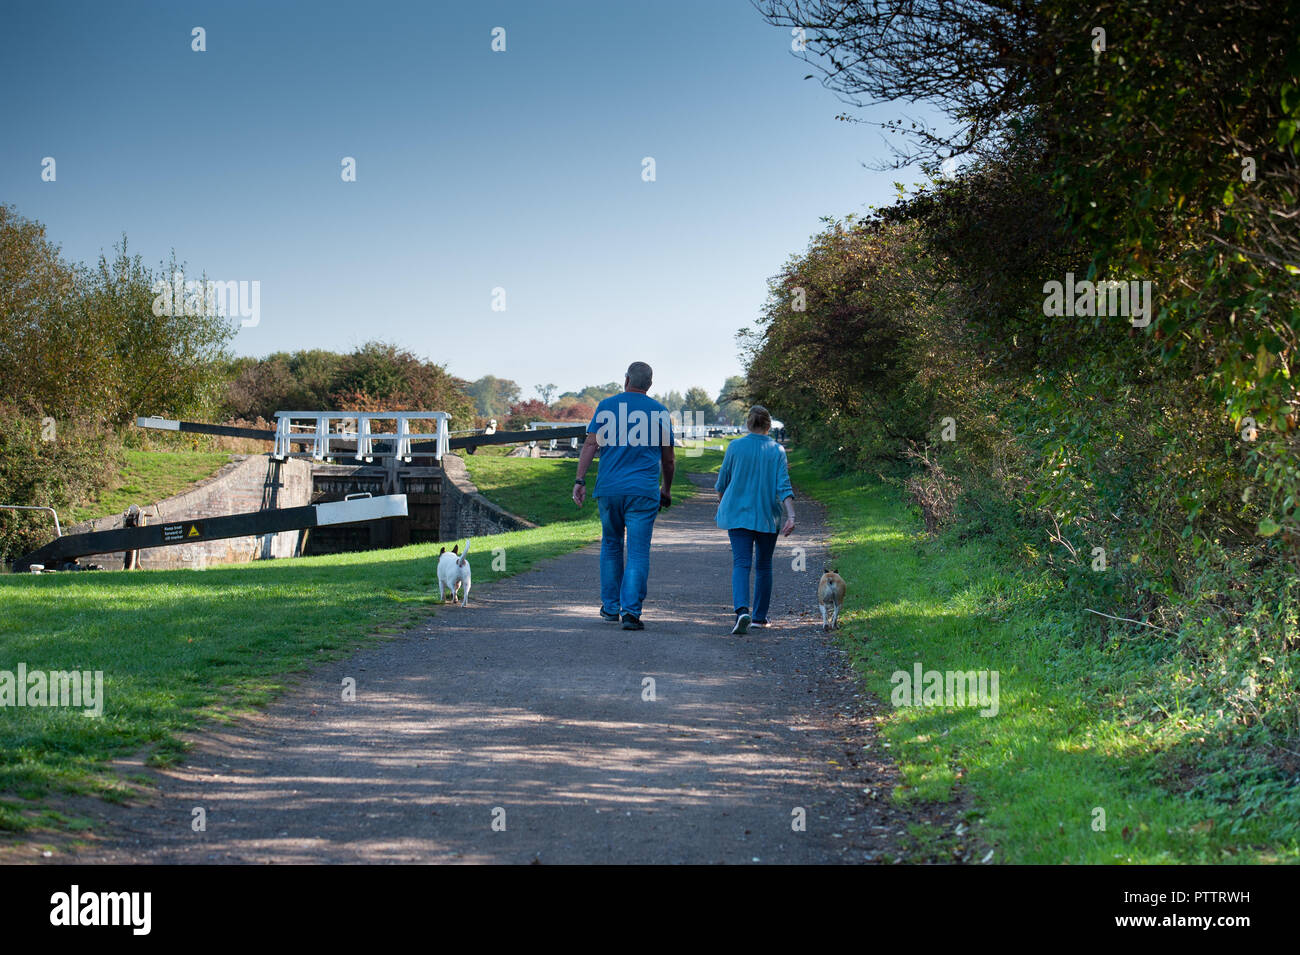 Walkers and their dogs on the towpath at the Caen Hill Flight on the Kennet and Avon Canal, Devizes, Wiltshire, UK. Stock Photo